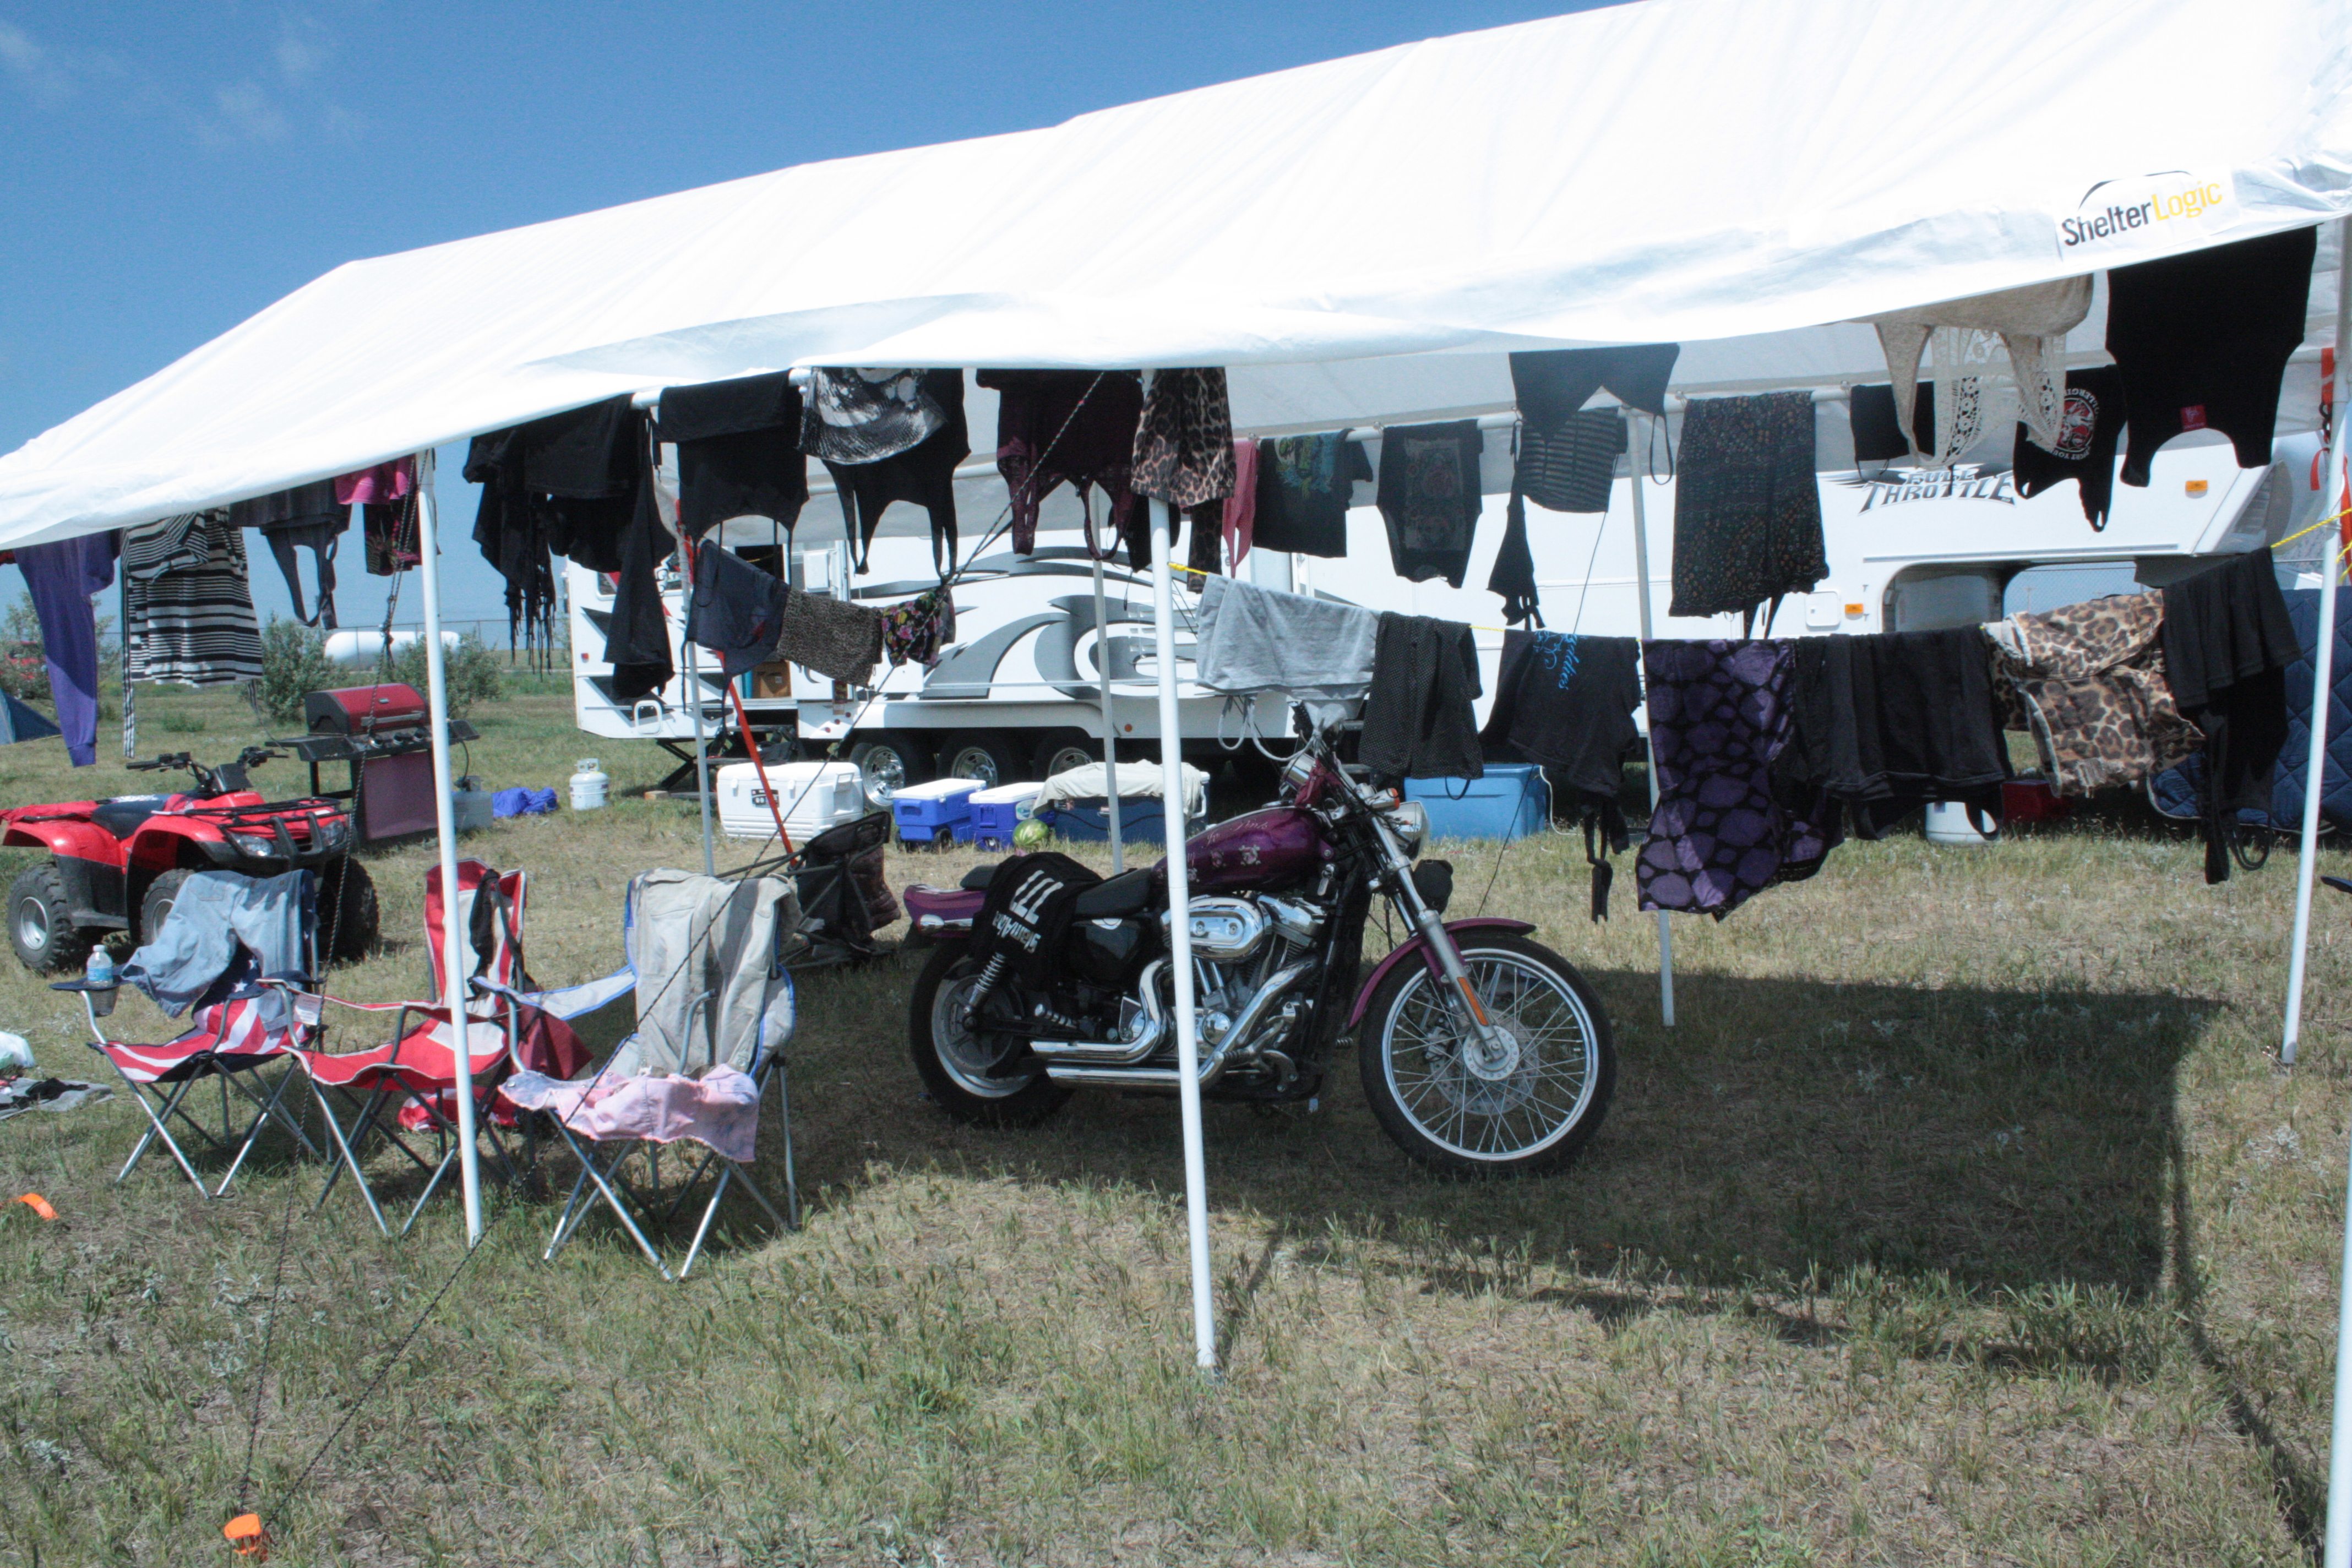 Drying out clothes after the storm